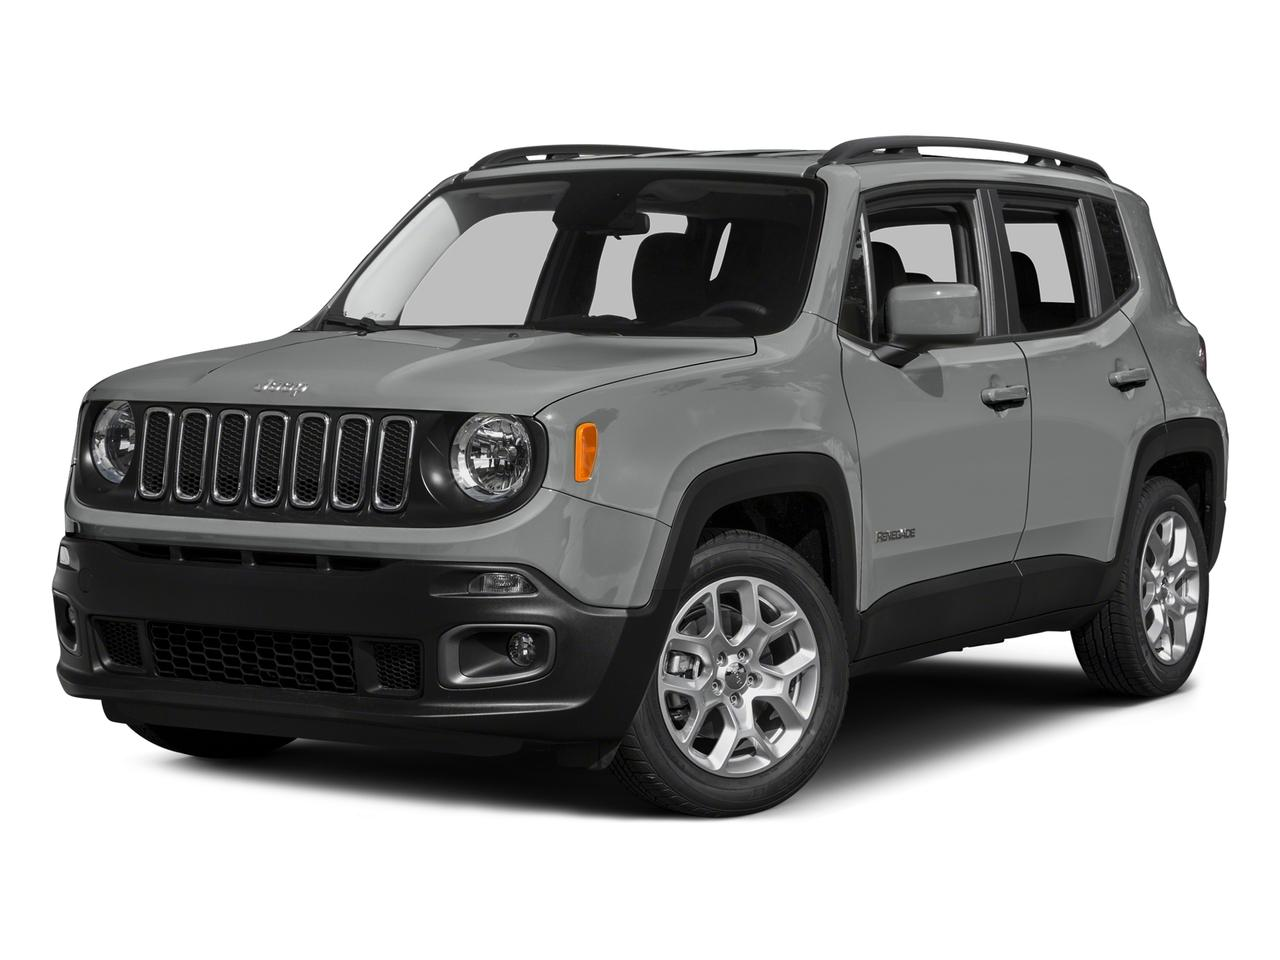 2015 Jeep Renegade Vehicle Photo in Medina, OH 44256